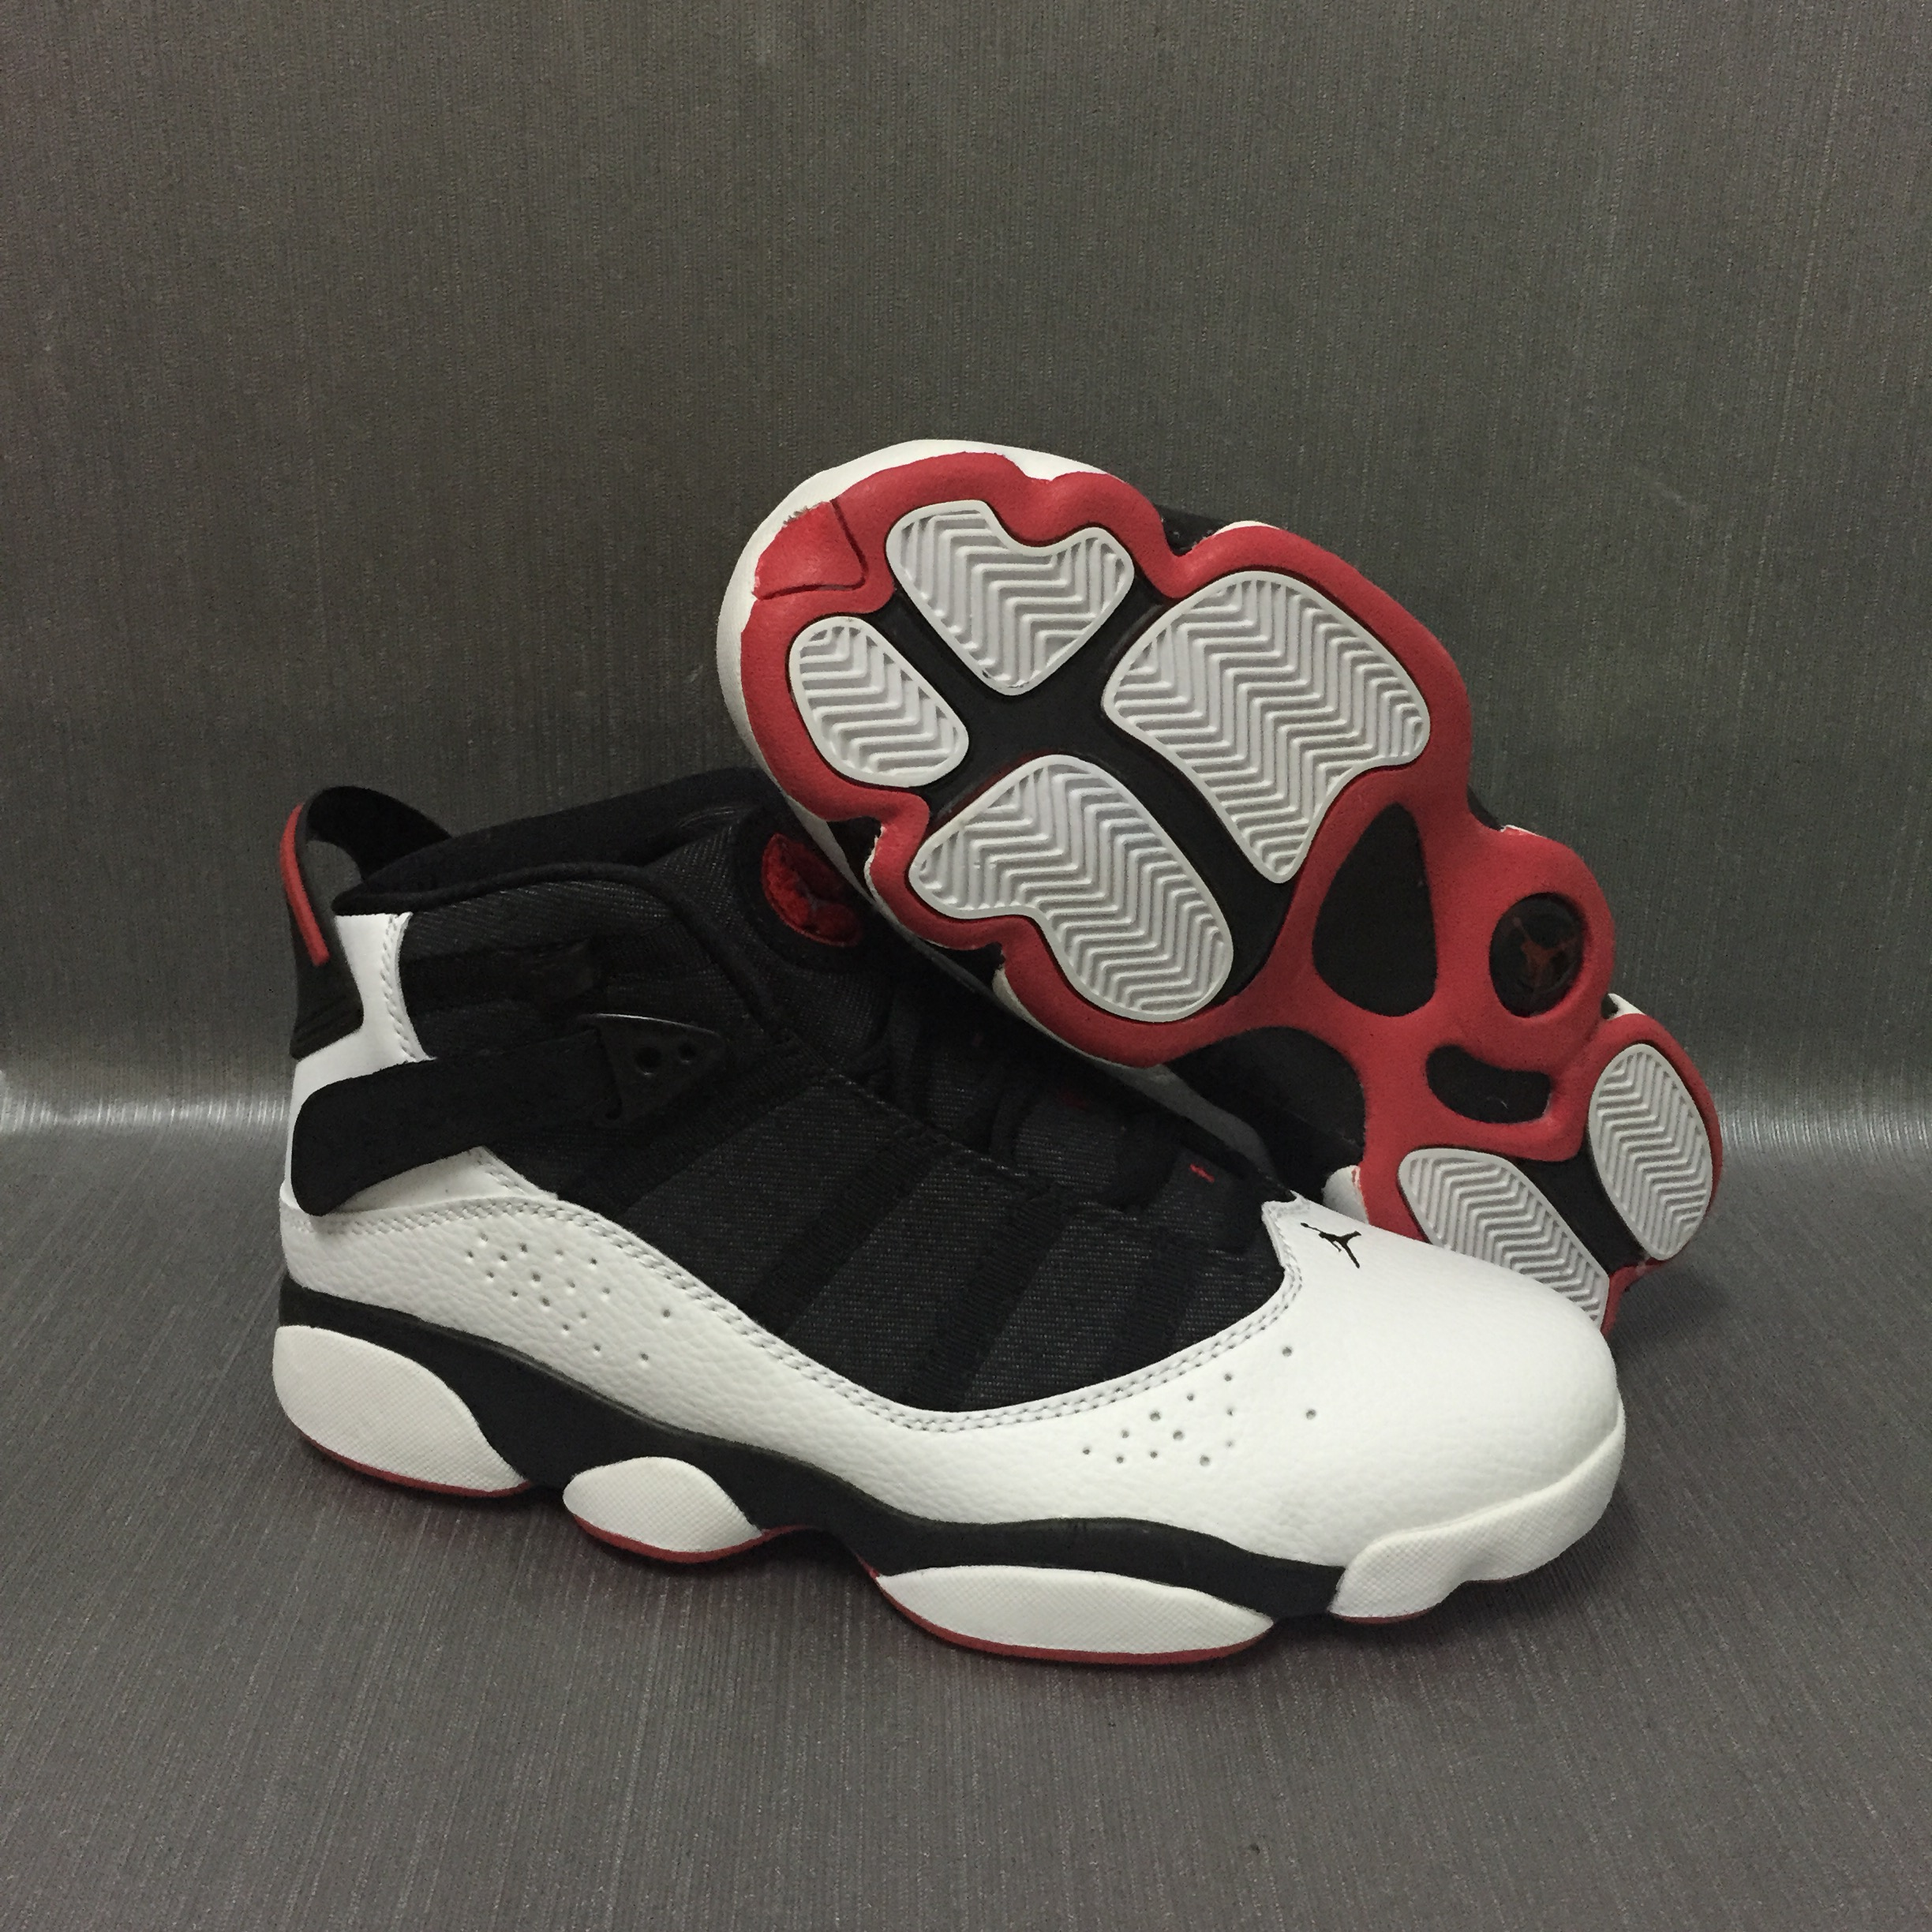 Cheap Air Jordans 6 Champion Black White Red SHoes